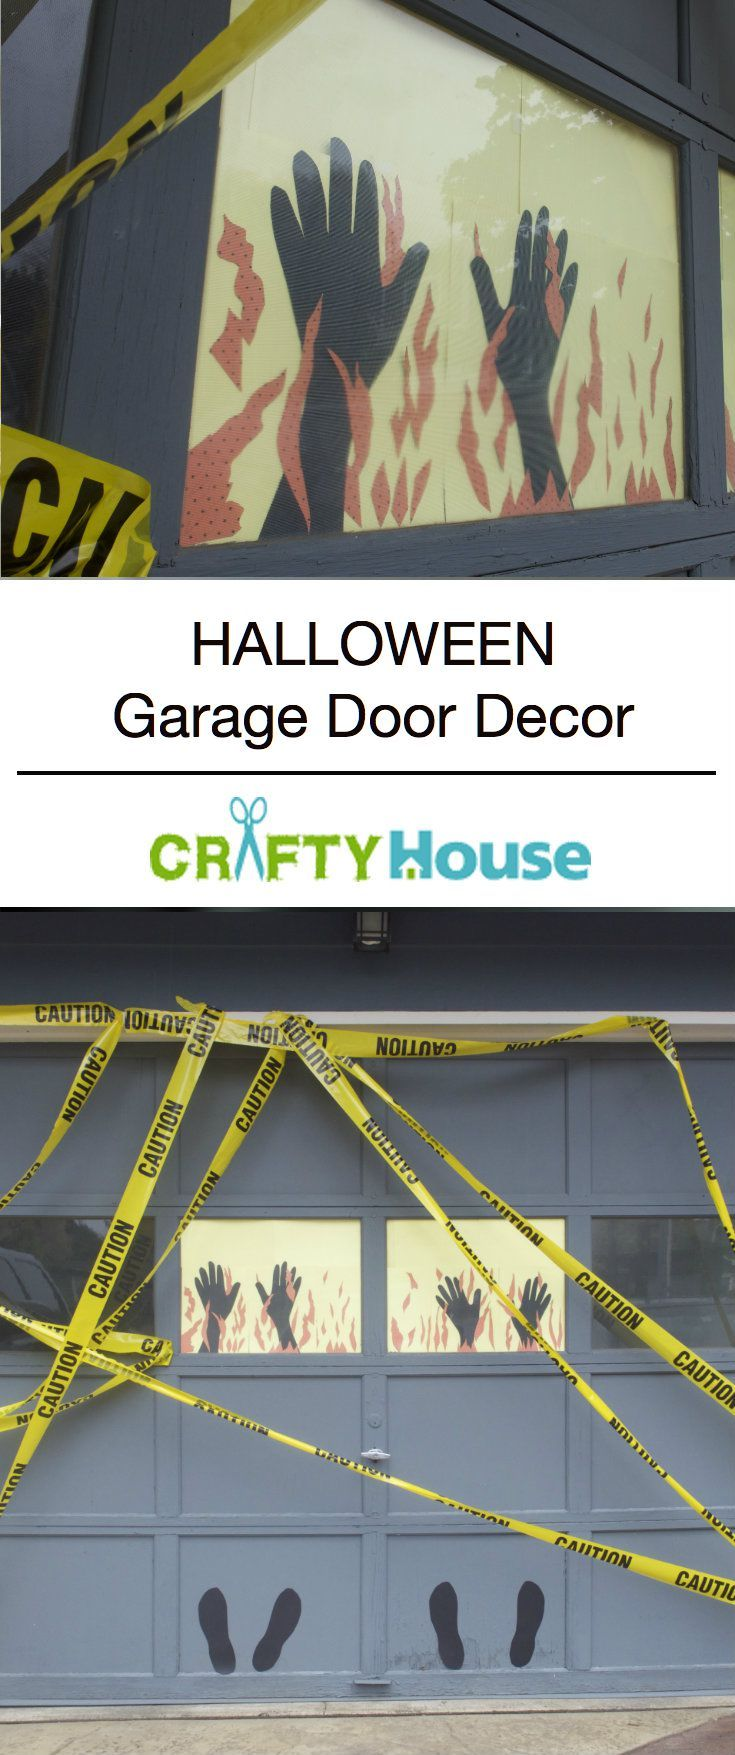 Halloween garage door decorations - Halloween Garage Door Decorations